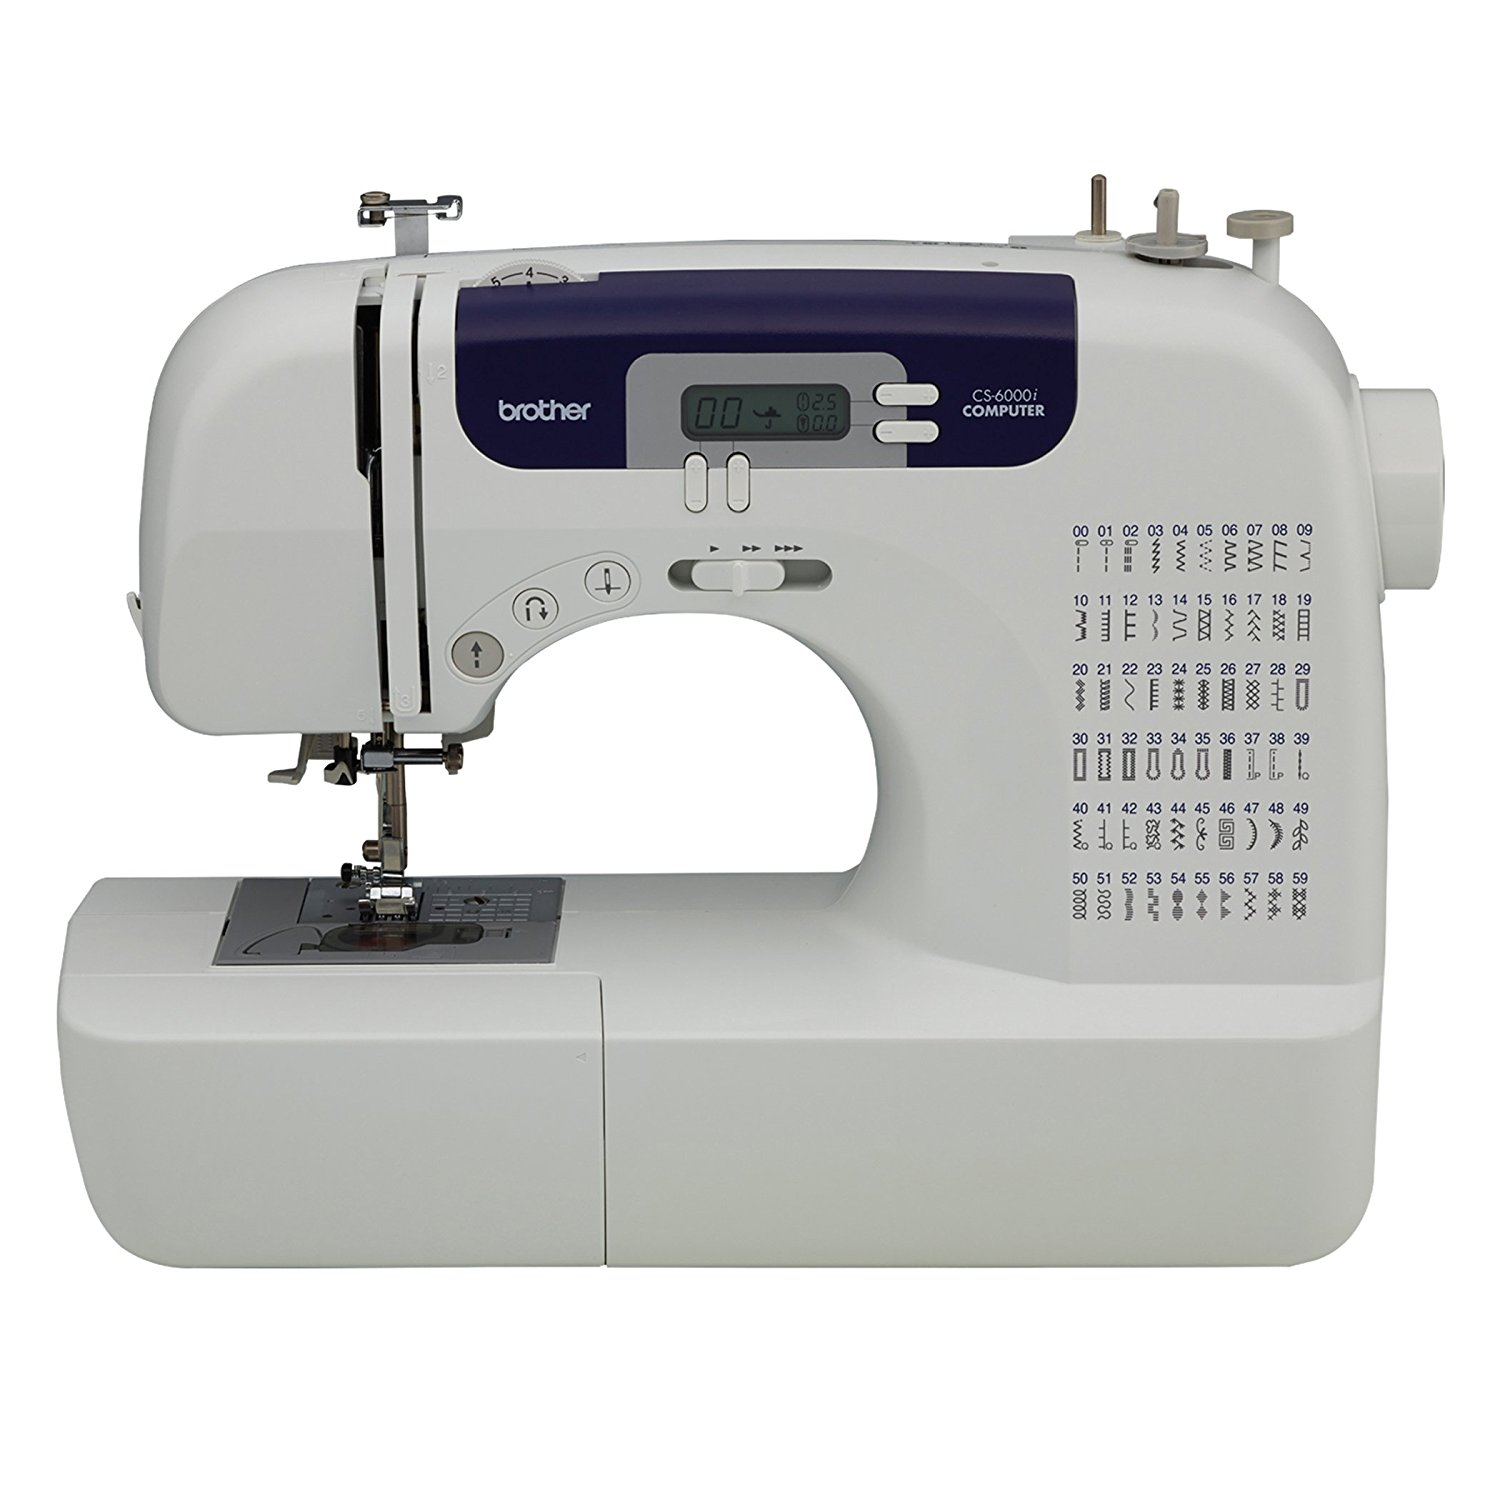 Best Brother Sewing & Embroidery Machine Review: Definitely the best machine from Brother